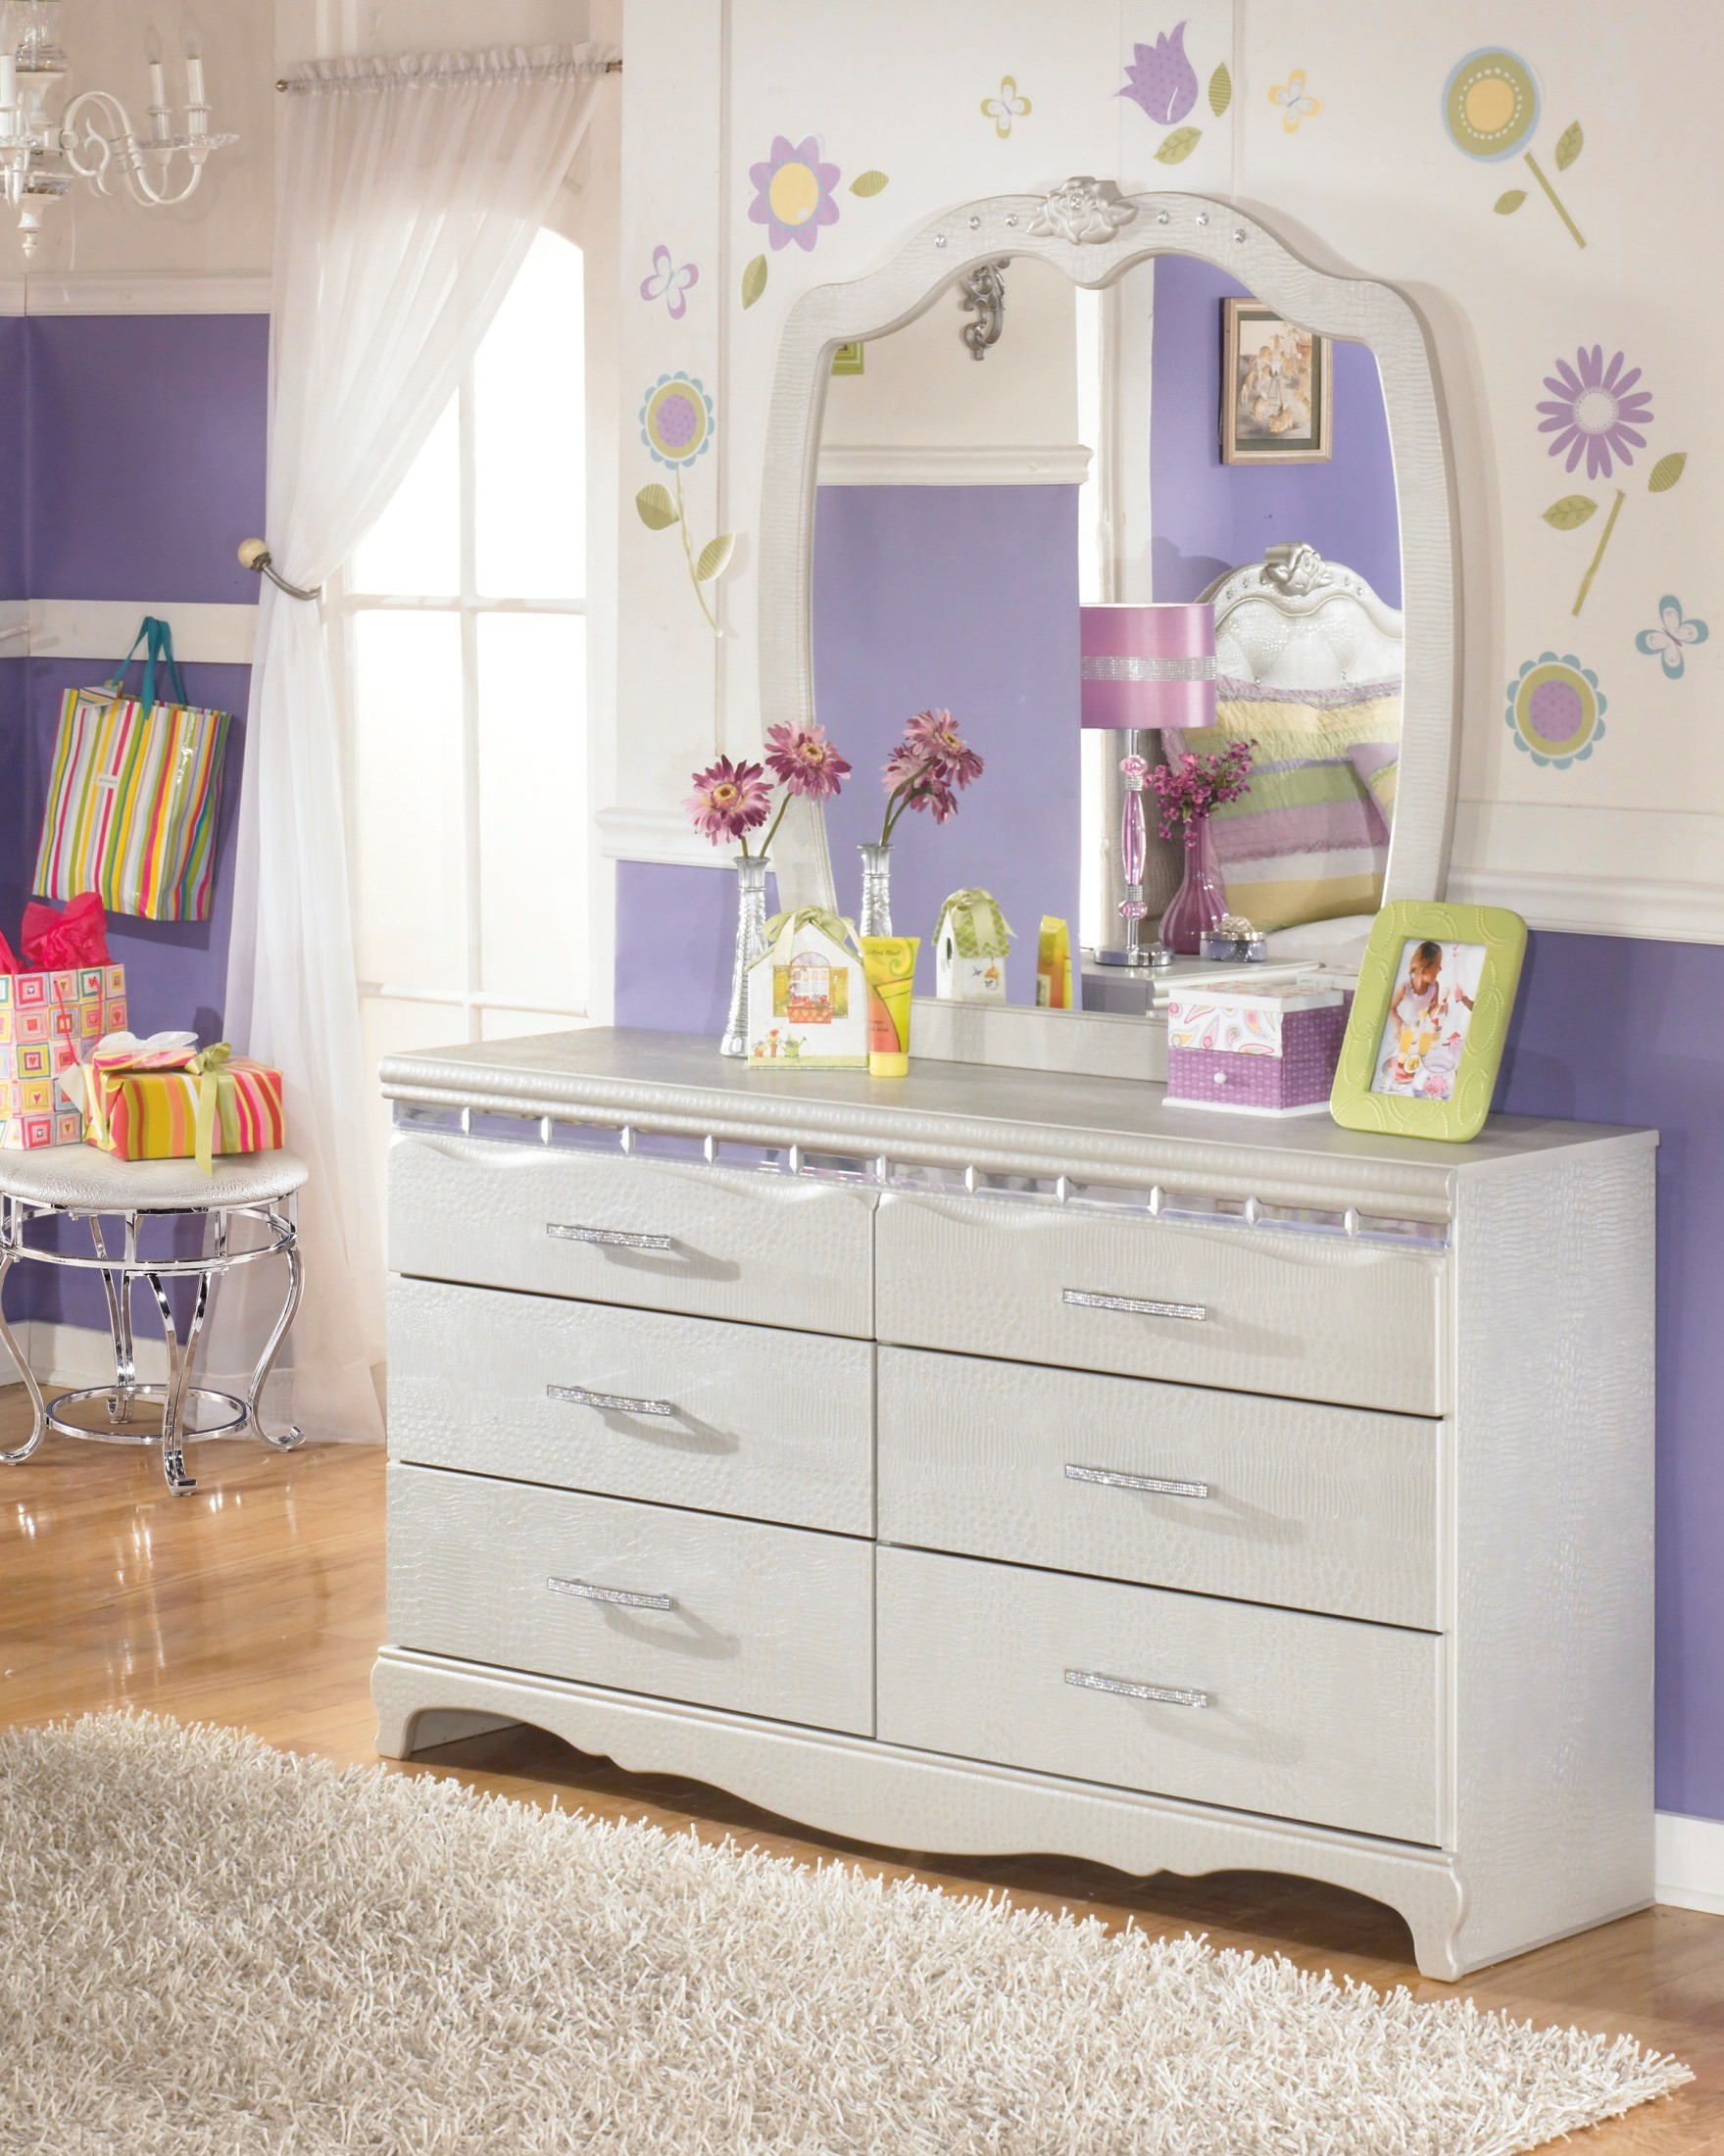 dresser girls Find unique dressers in a variety of different designs: wood, metal, 3-drawer, 4-drawer, 5-drawer, and other dresser sizes & styles for the bedroom.